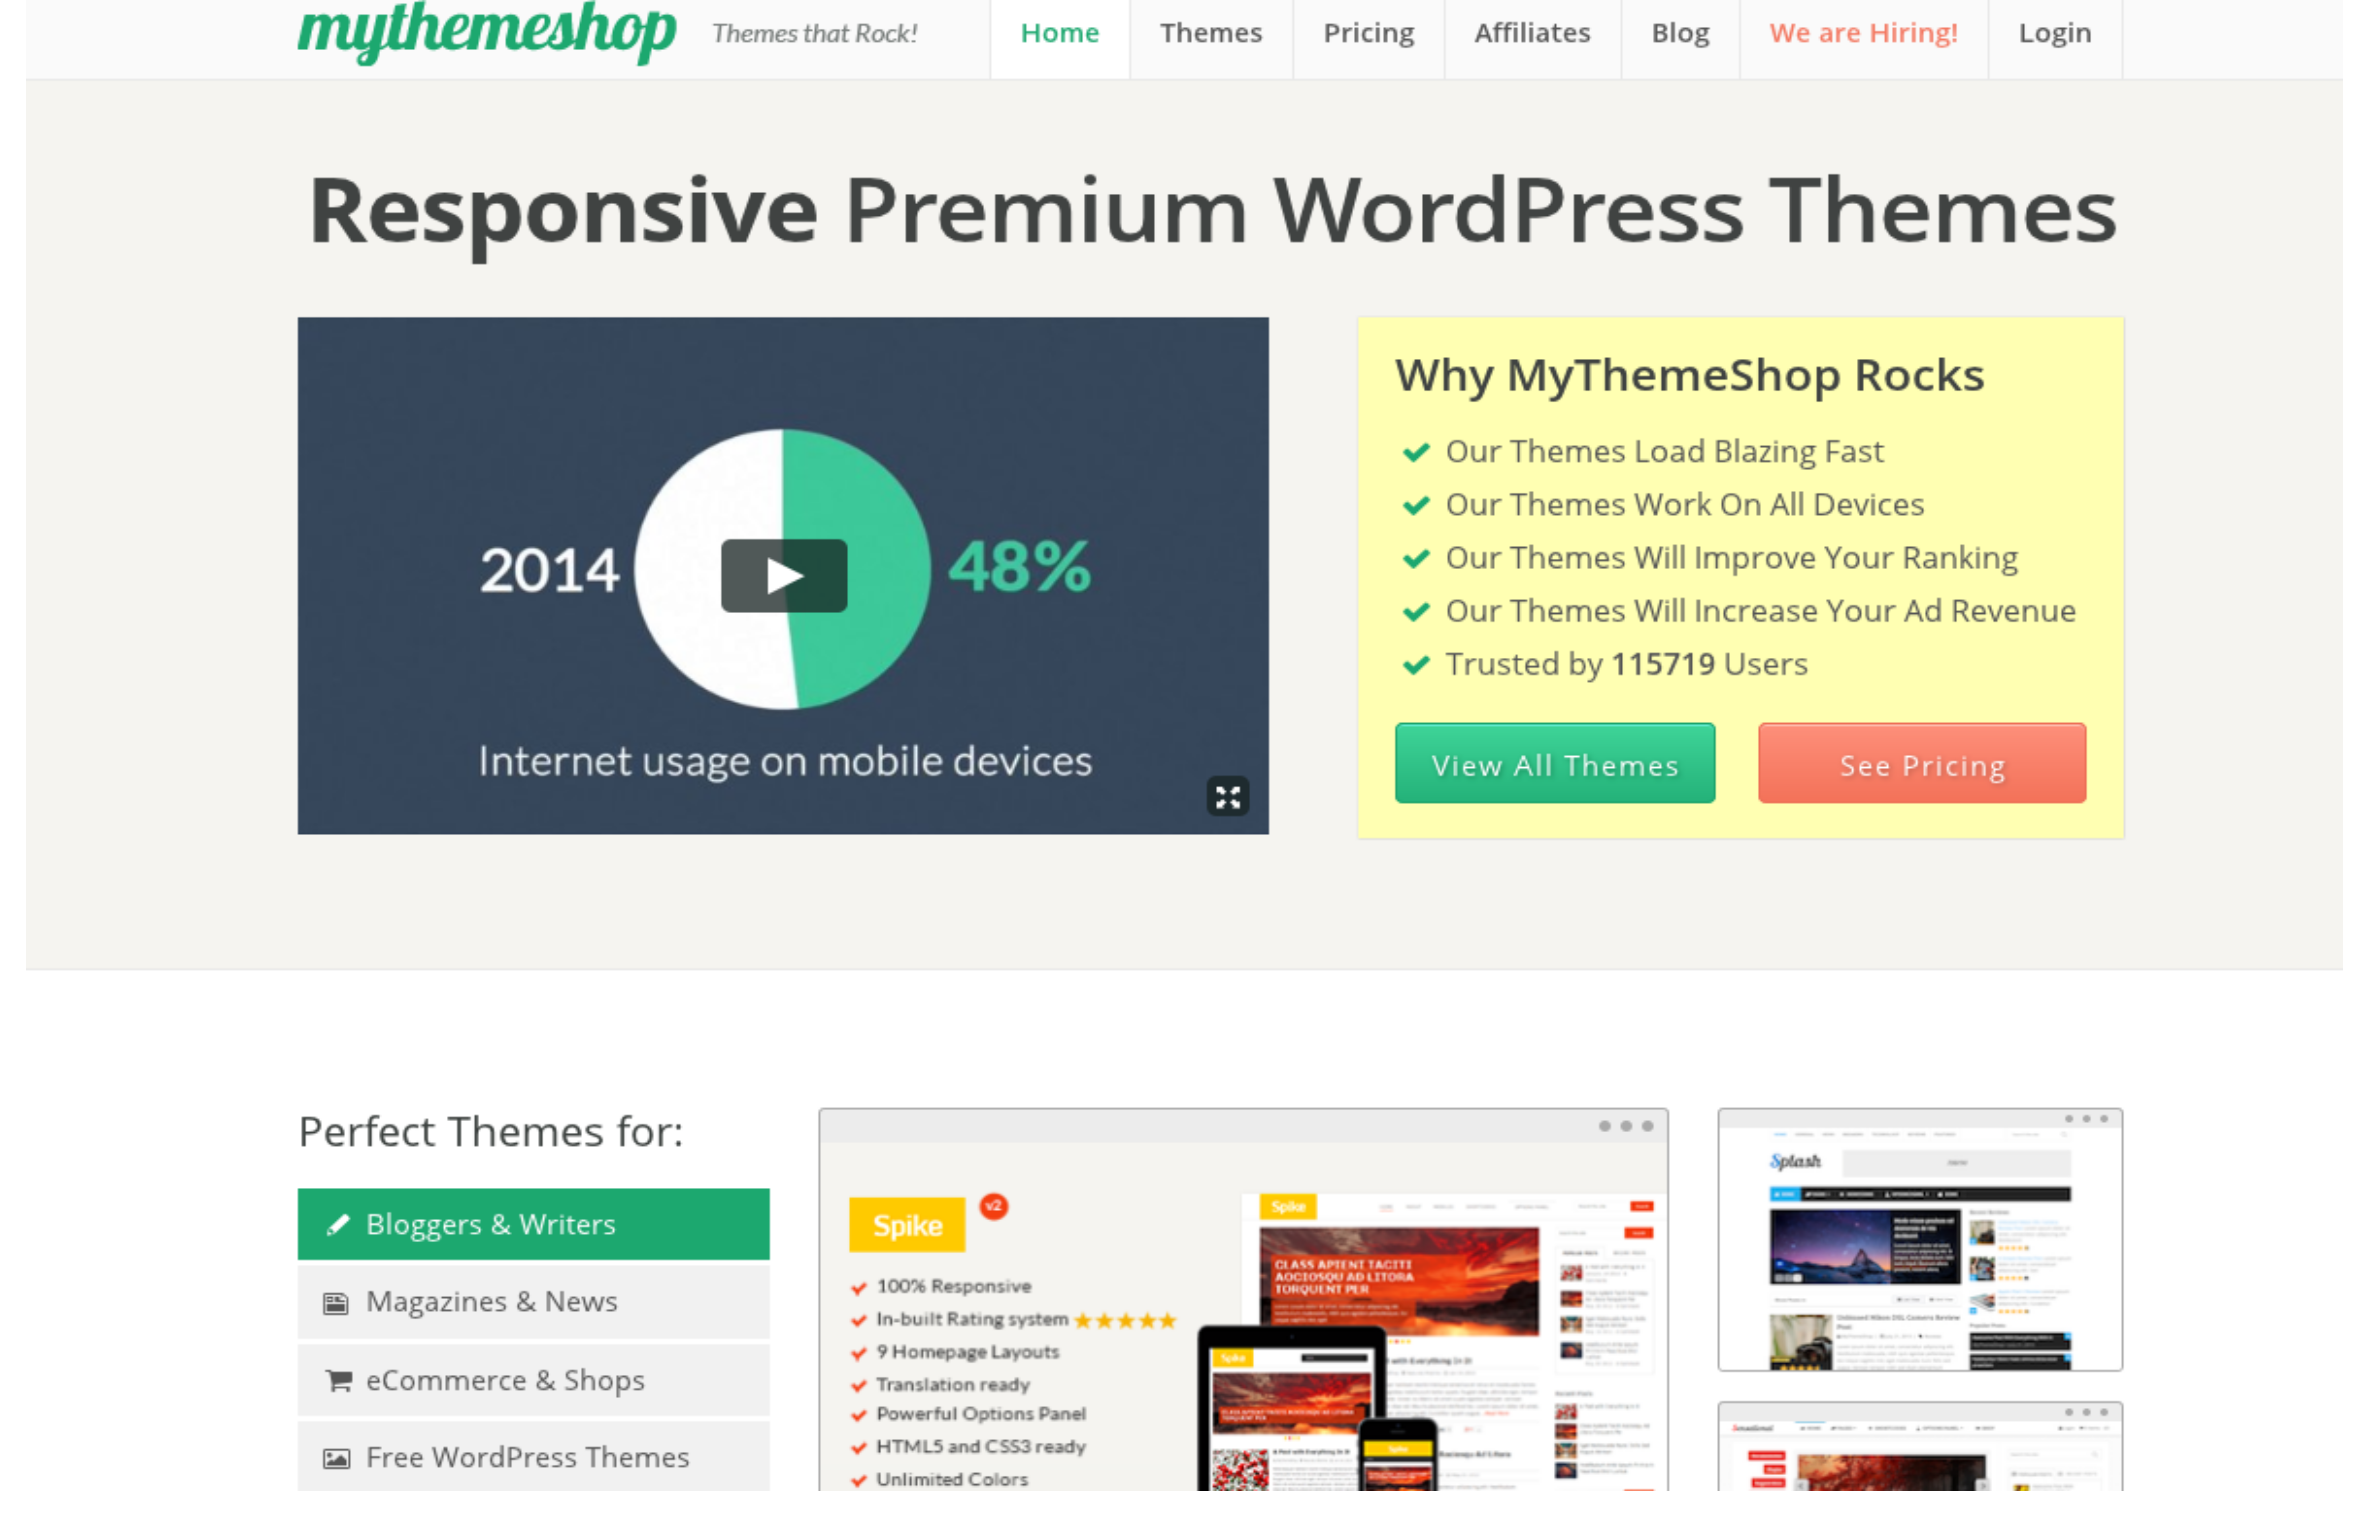 Mythemeshop WordPress Theme Club